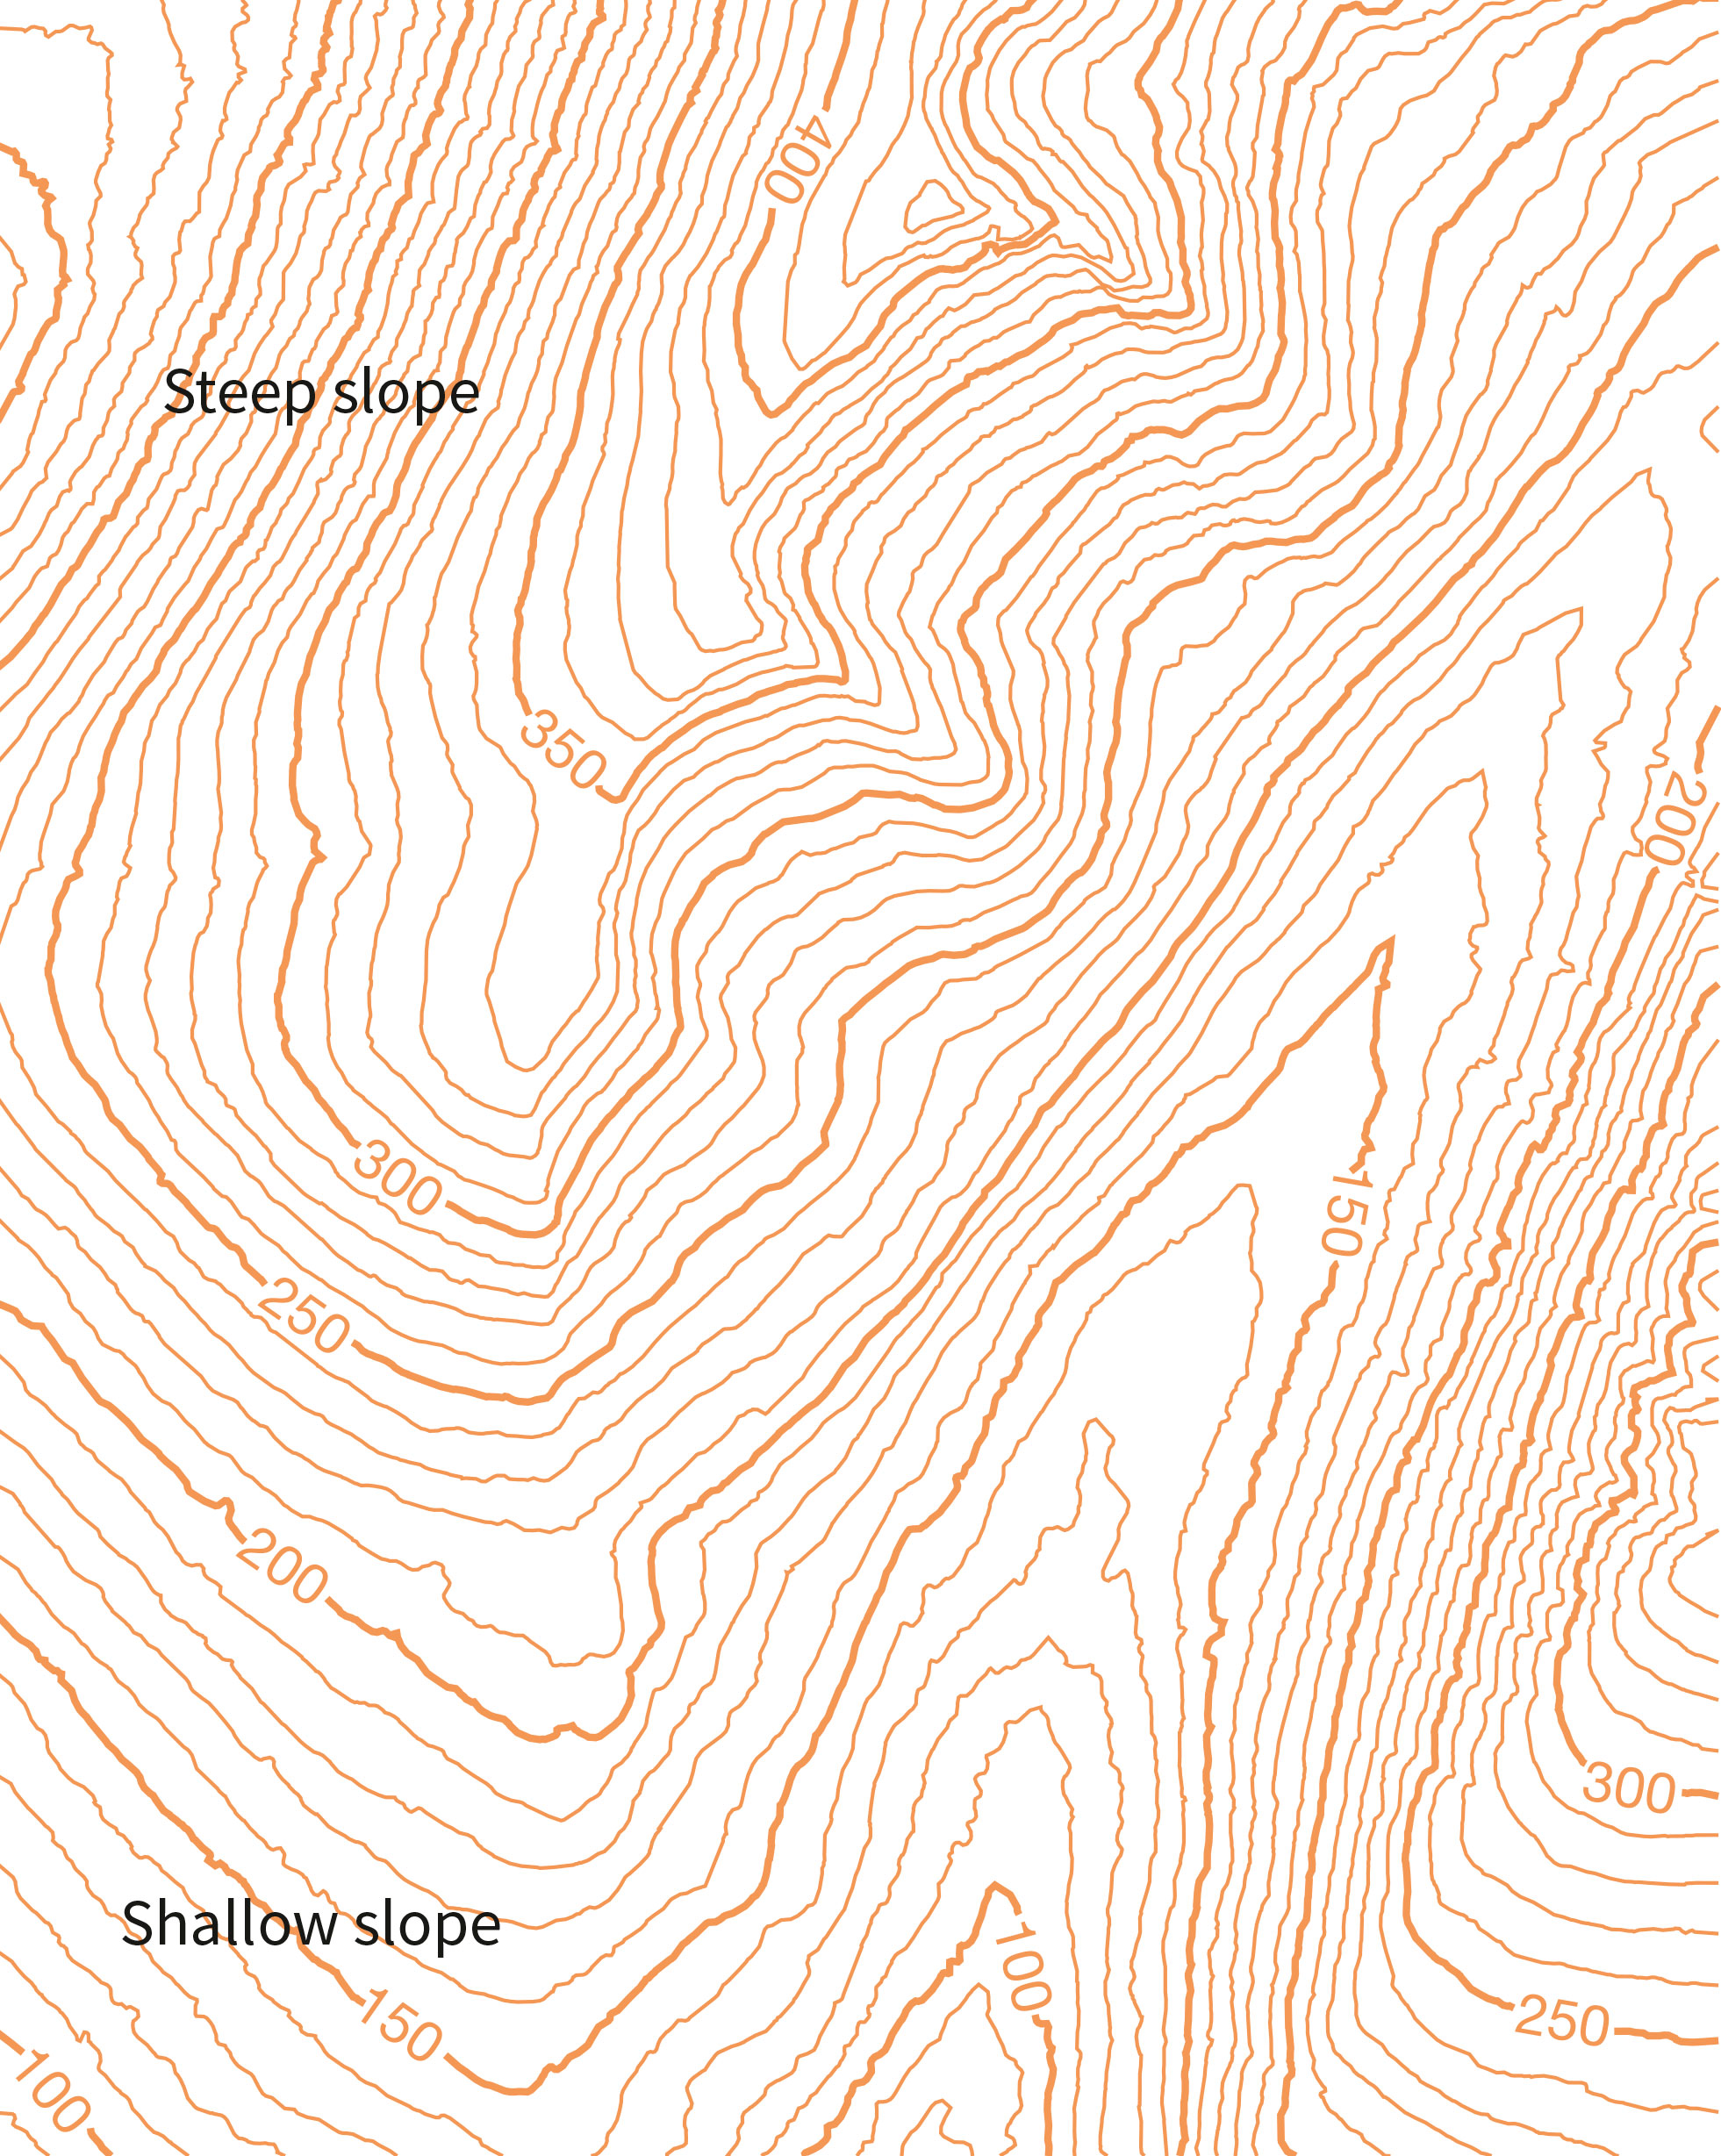 Line On A Map A beginners guide to understanding map contour lines | OS GetOutside